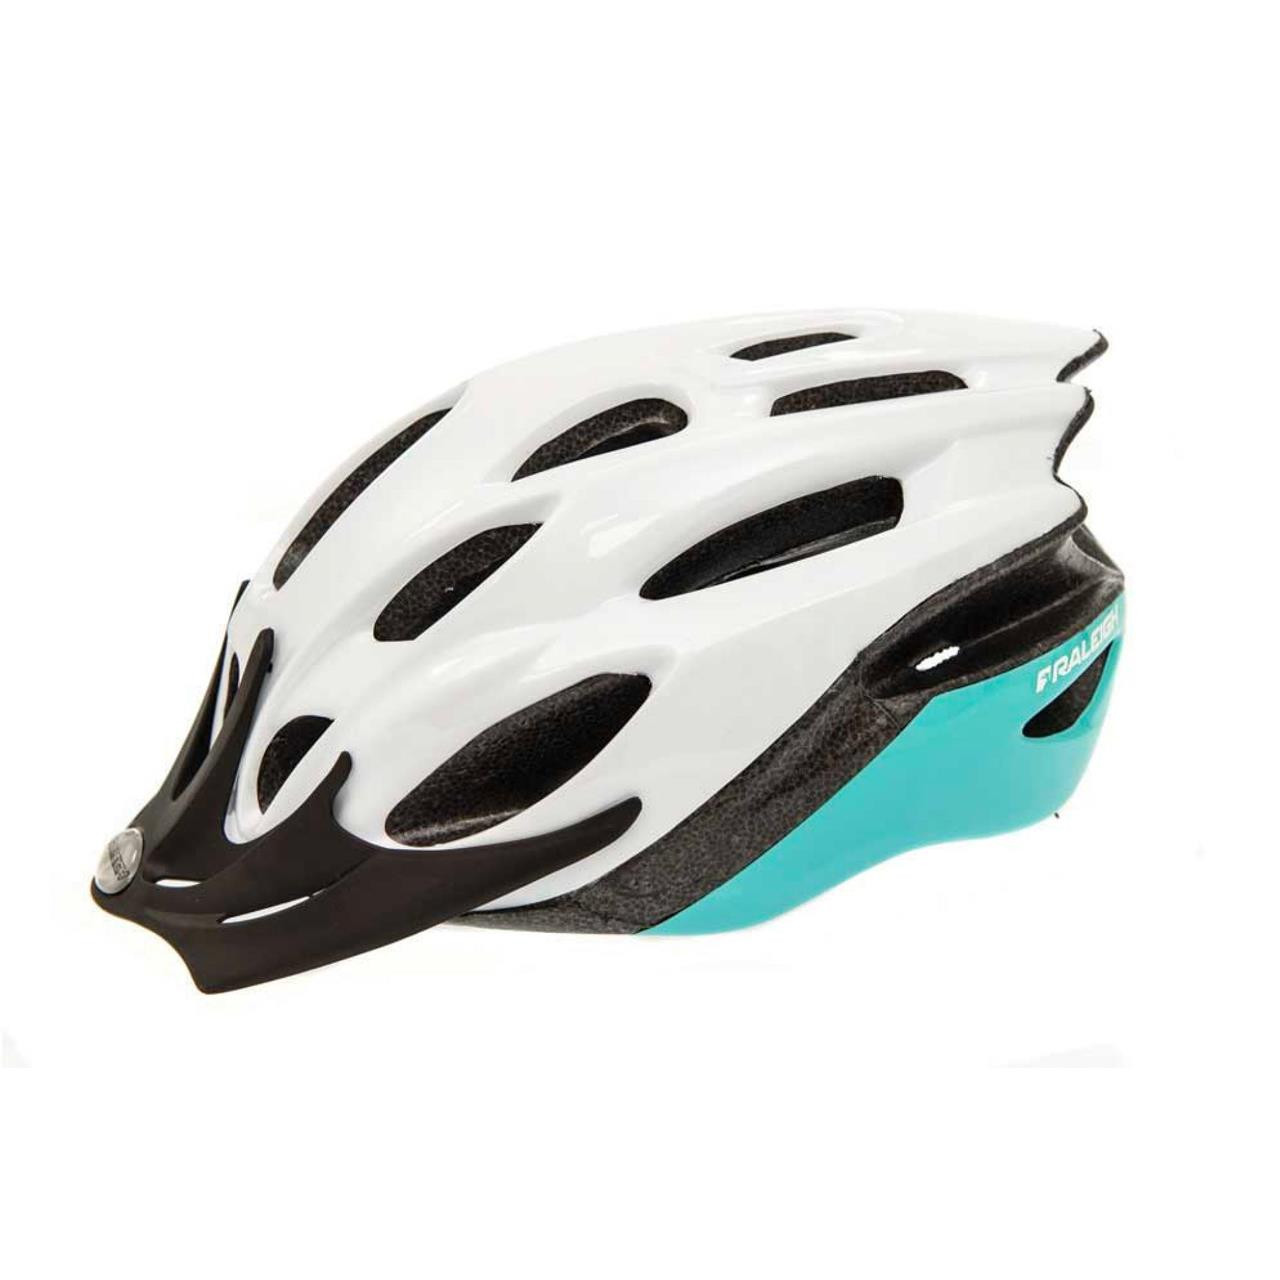 Raleigh Mission Evo Helmet - White and Green